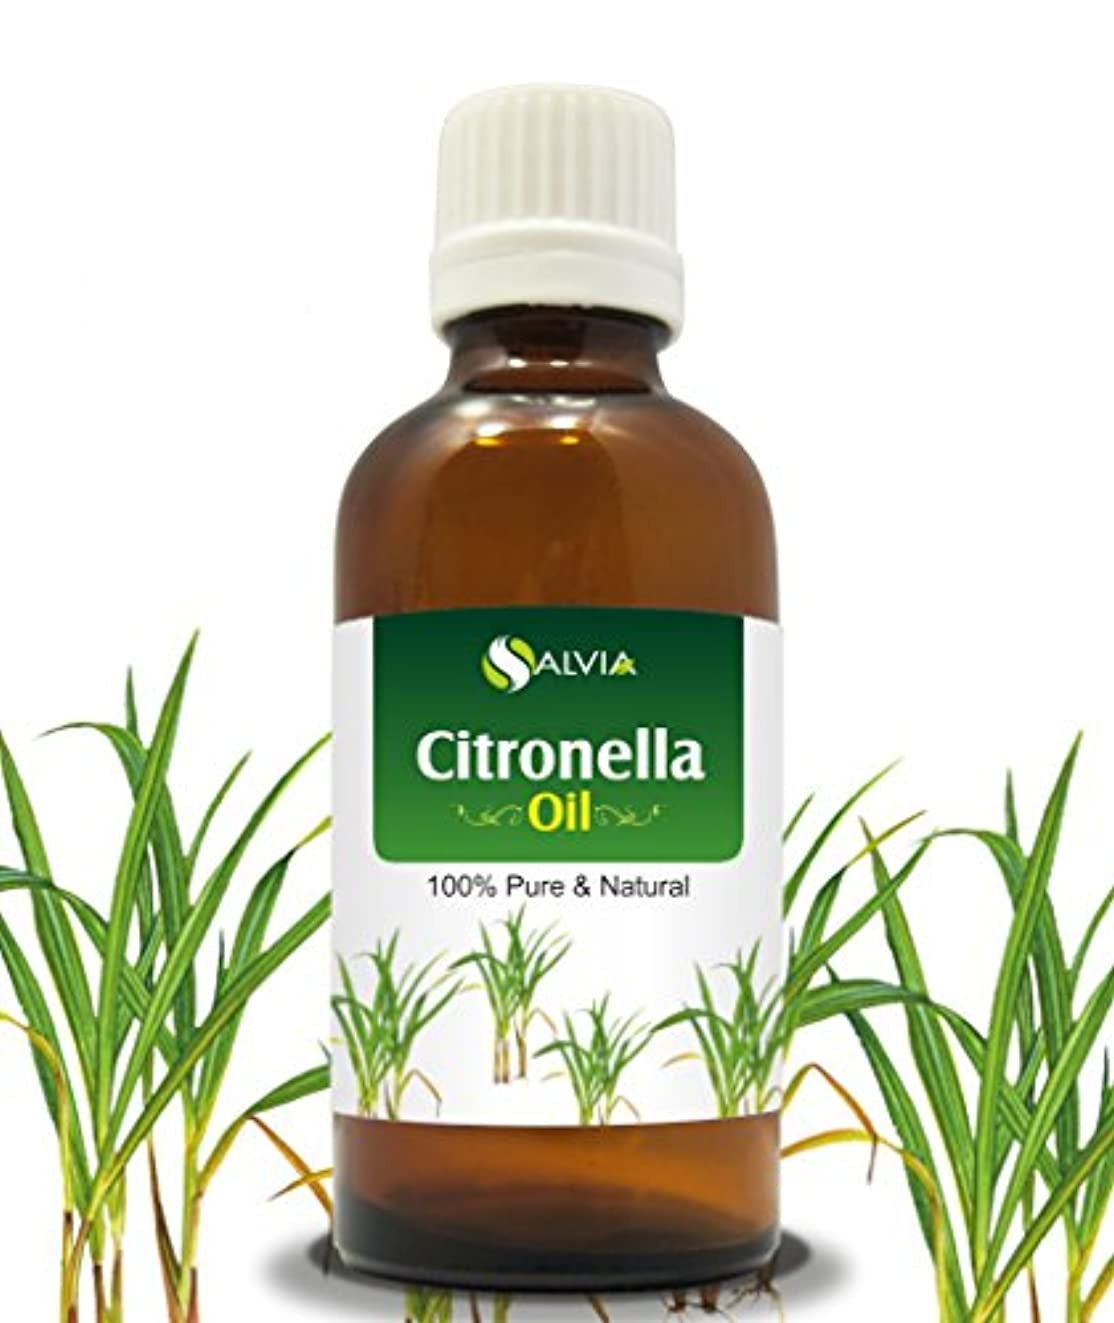 気まぐれな役職不適切なCITRONELLA OIL 100% NATURAL PURE UNDILUTED UNCUT ESSENTIAL OIL 30ML